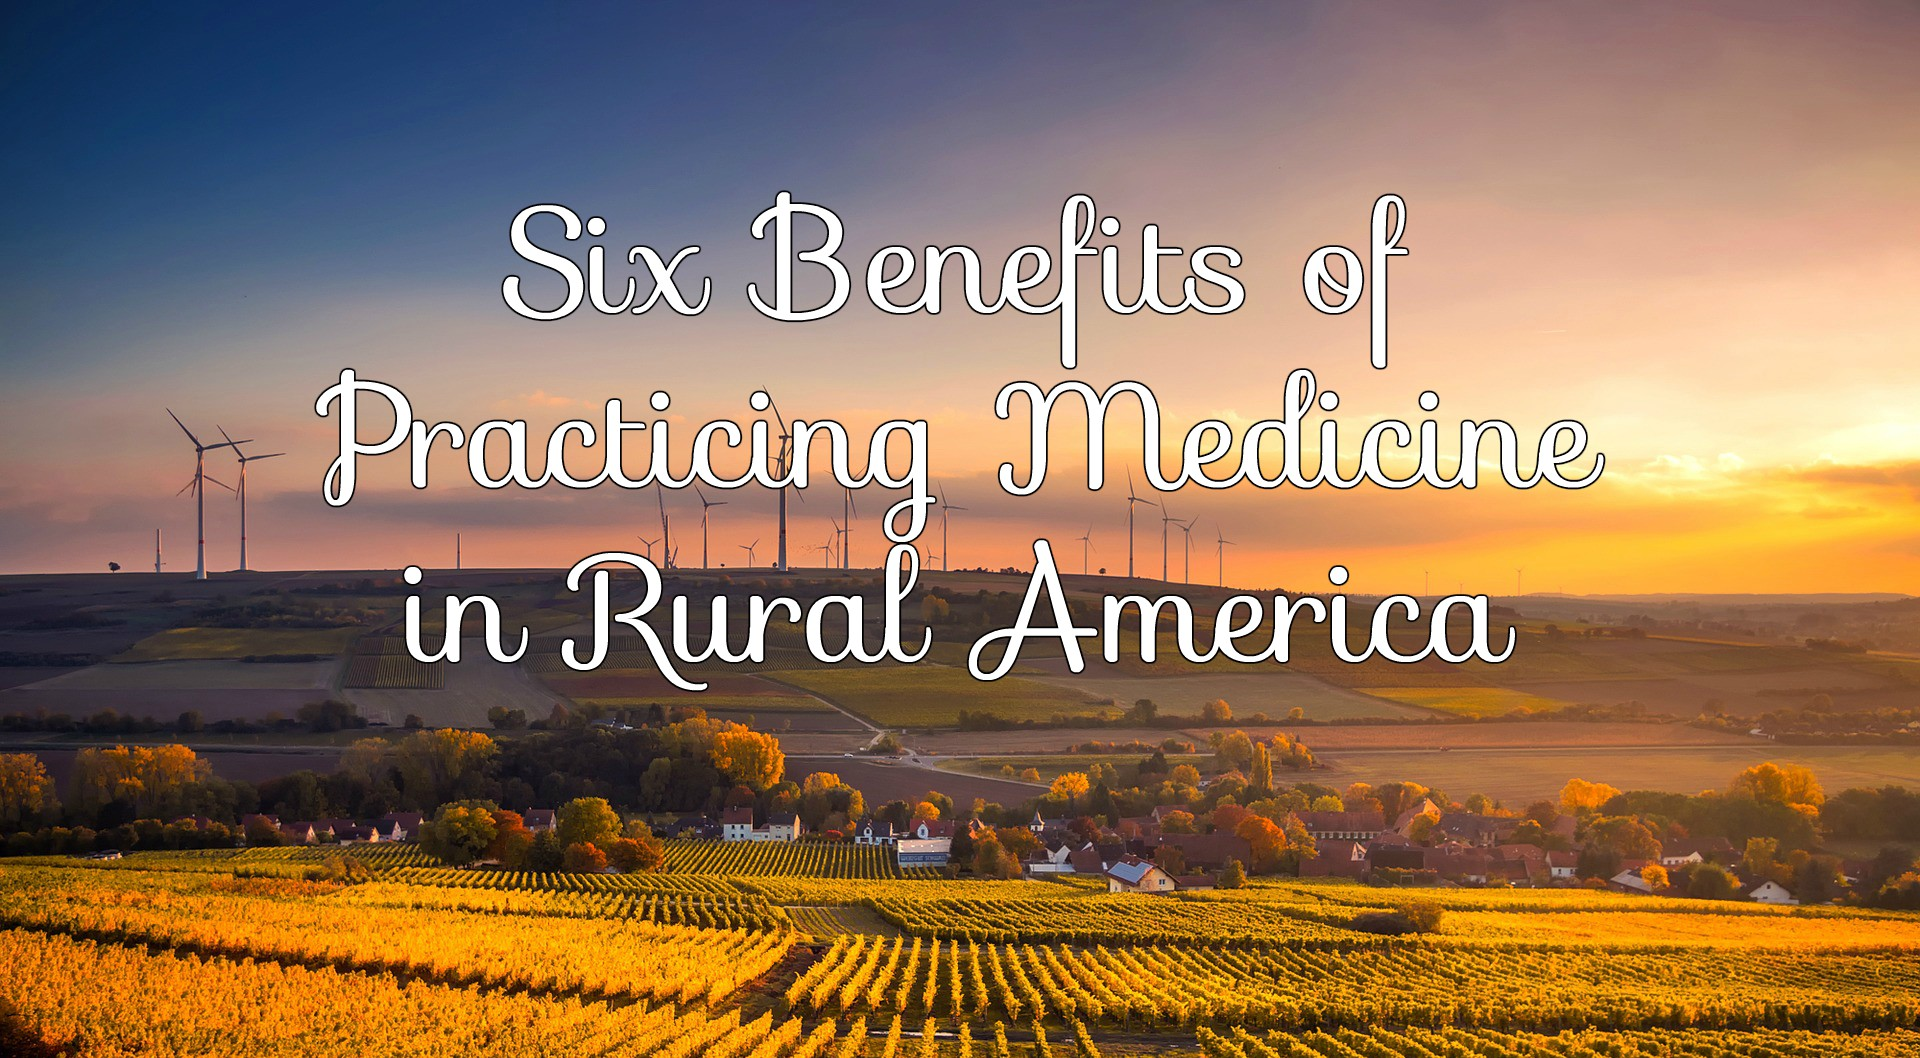 Six Benefits of Practicing Medicine in Rural America